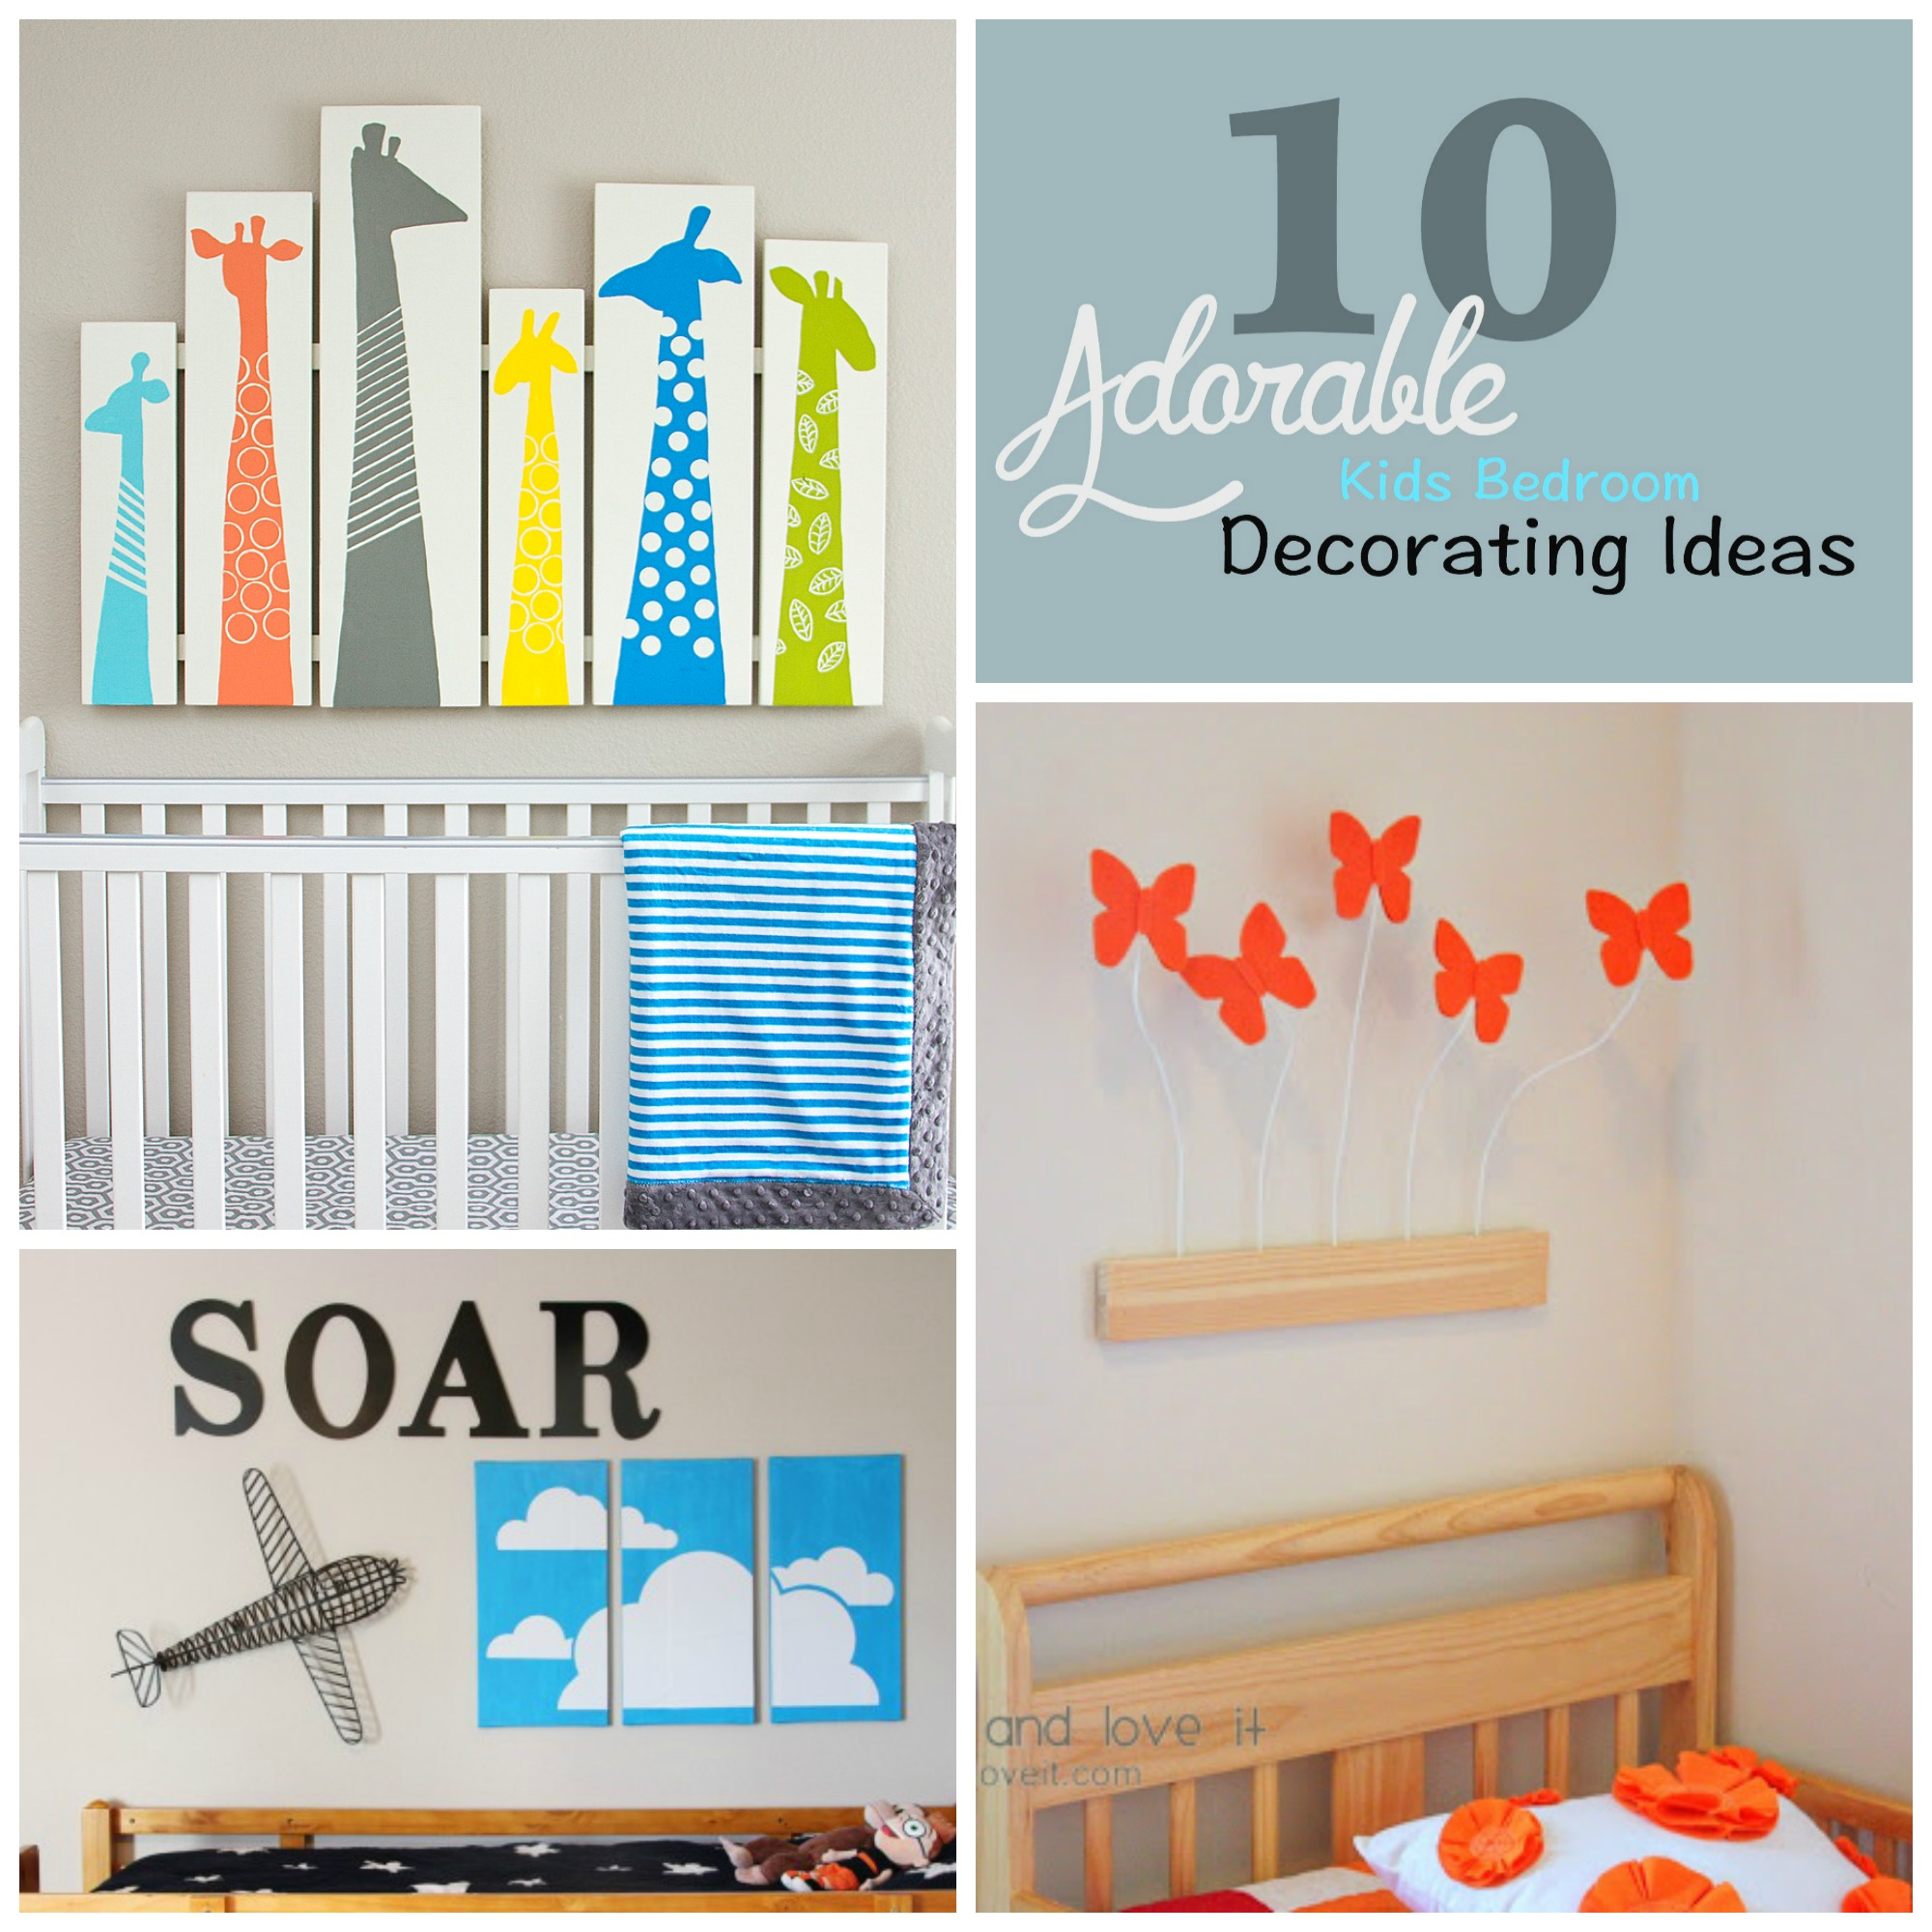 10 Adorable Kids Bedroom Decorating Ideas